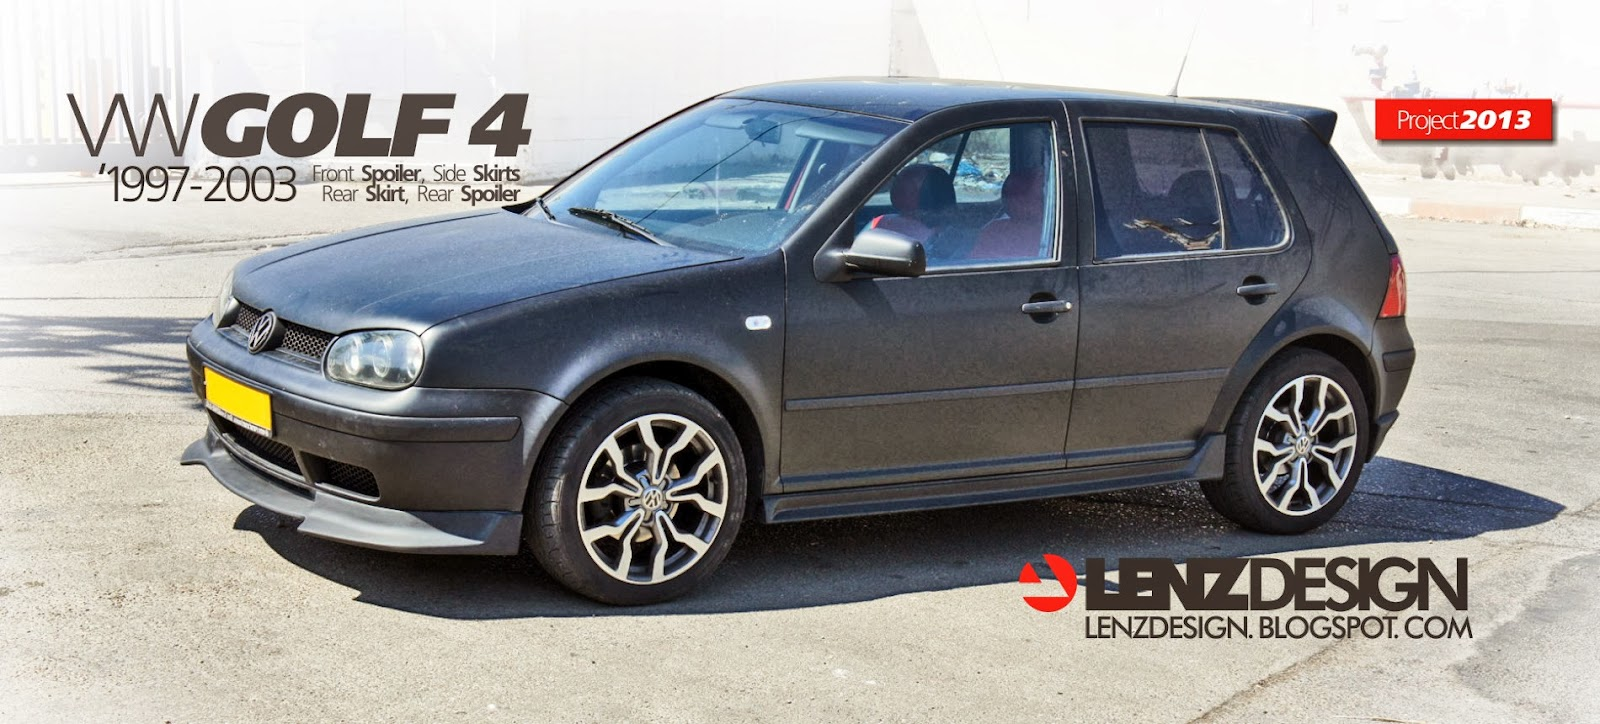 vw golf 4 tuning lenzdesign auto. Black Bedroom Furniture Sets. Home Design Ideas